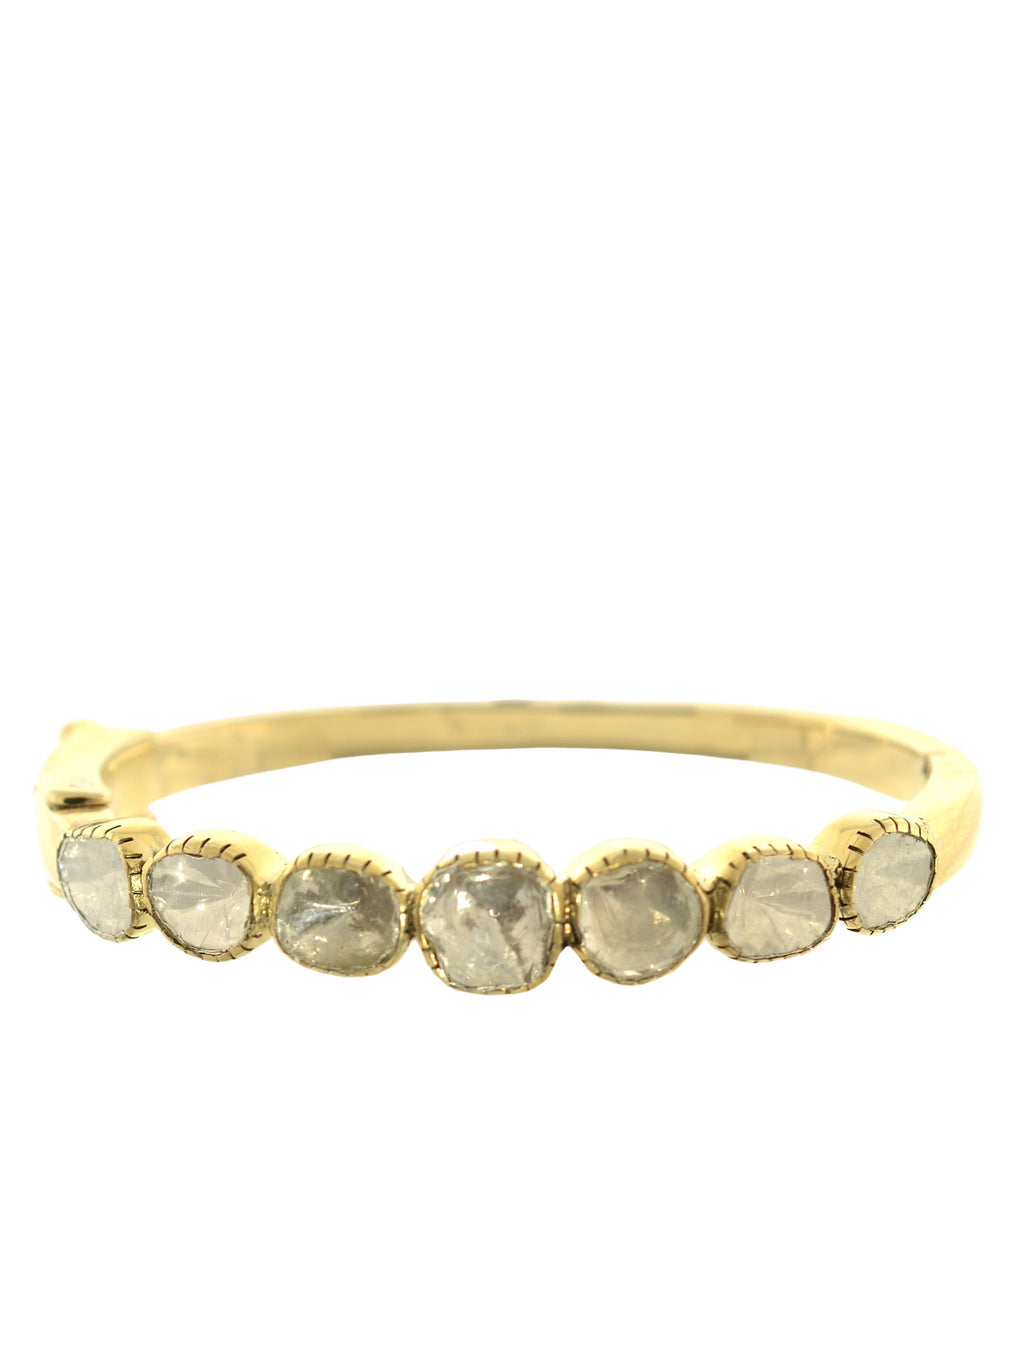 Rose Cut Diamond Brass Bangle